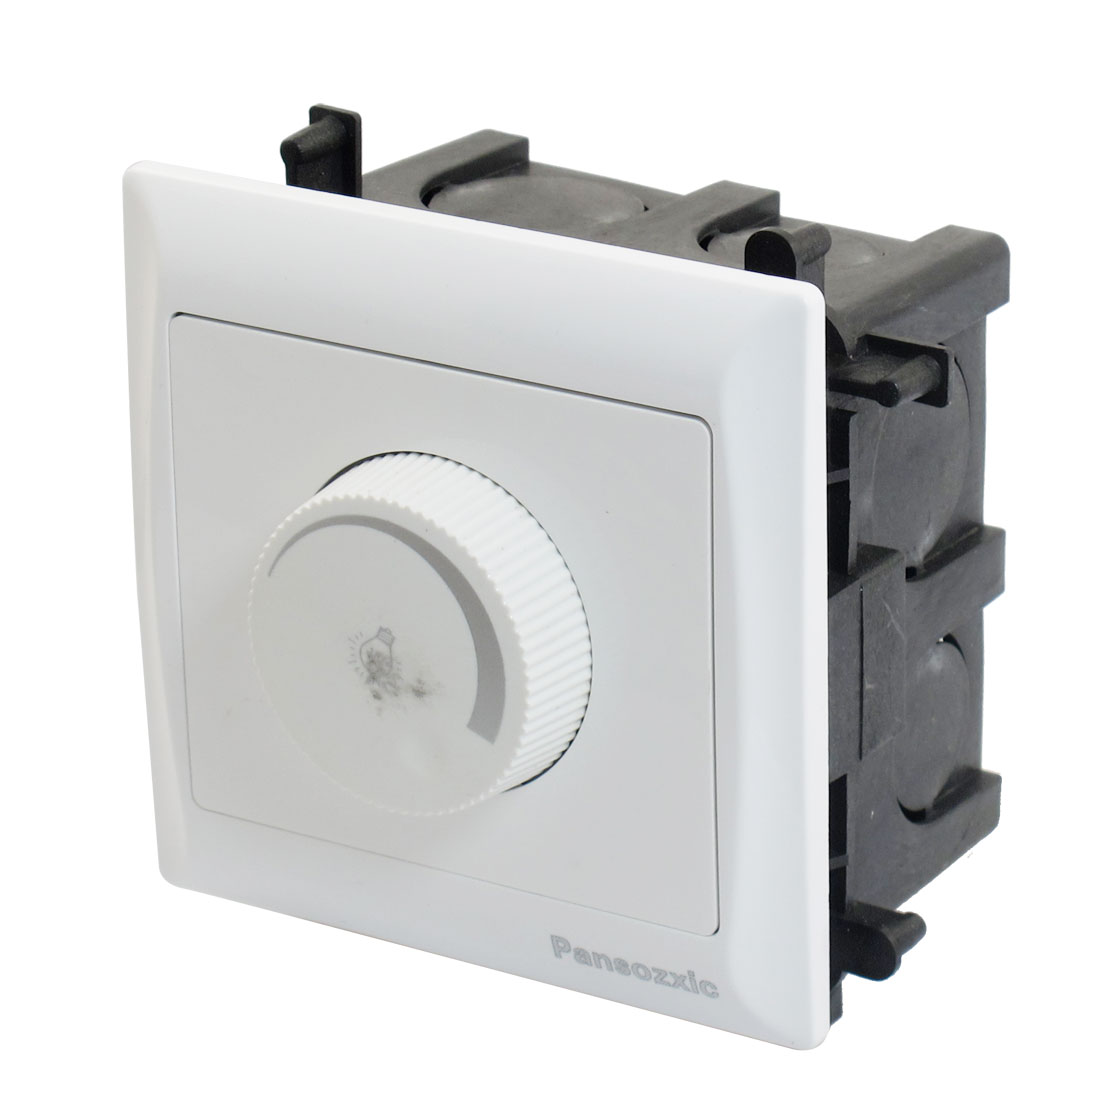 AC 150-250V 40-150W White Wall Panel Dimming Switch w Flush Mount Box